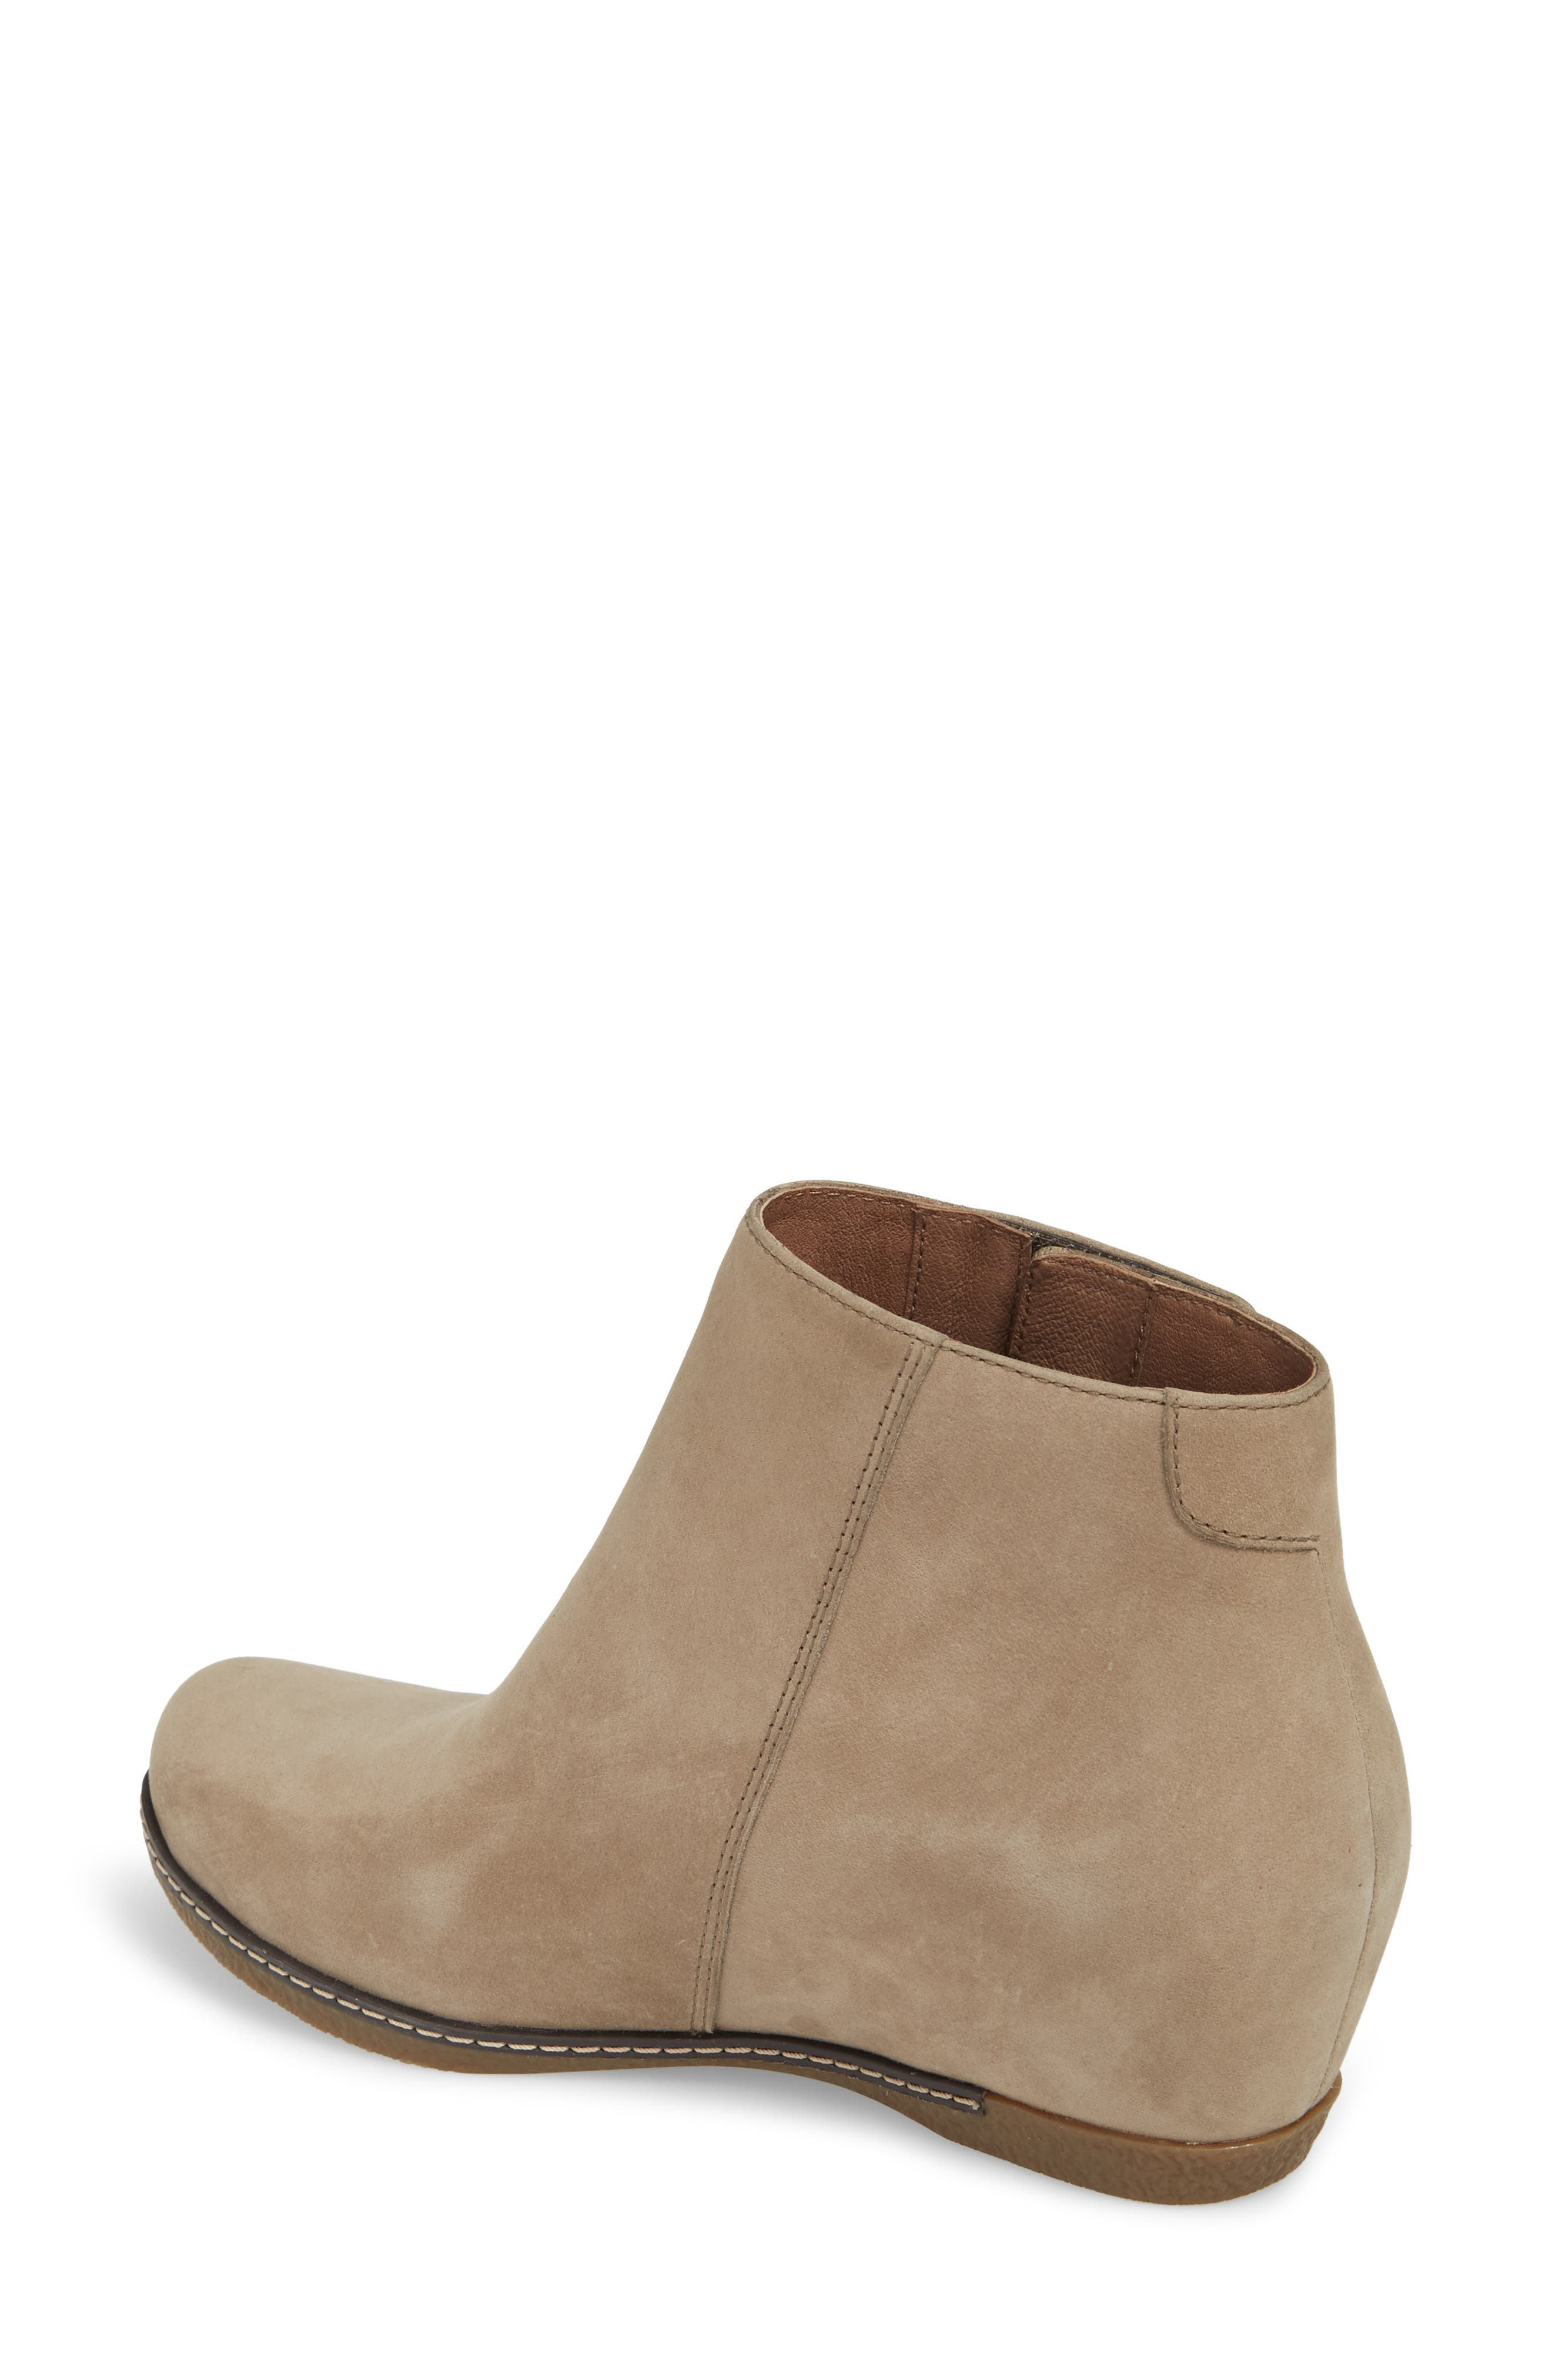 Leanna Bootie,                             Alternate thumbnail 2, color,                             Taupe Burnished Nubuck